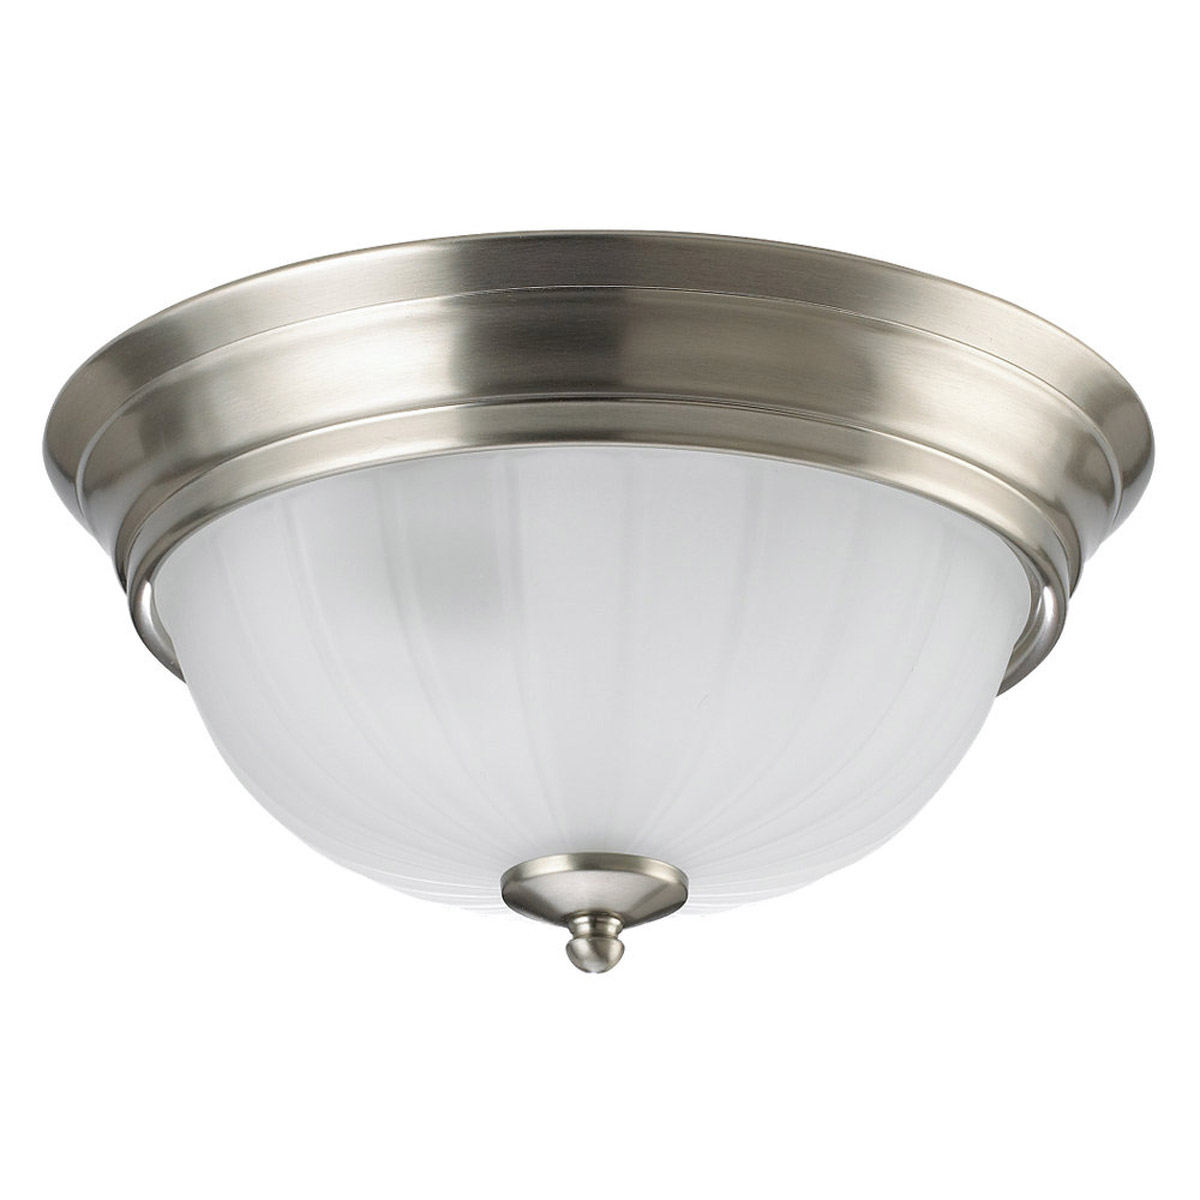 Sea Gull Lighting Linwood 3 Light Flush Mount in Brushed Nickel 7506-962 photo